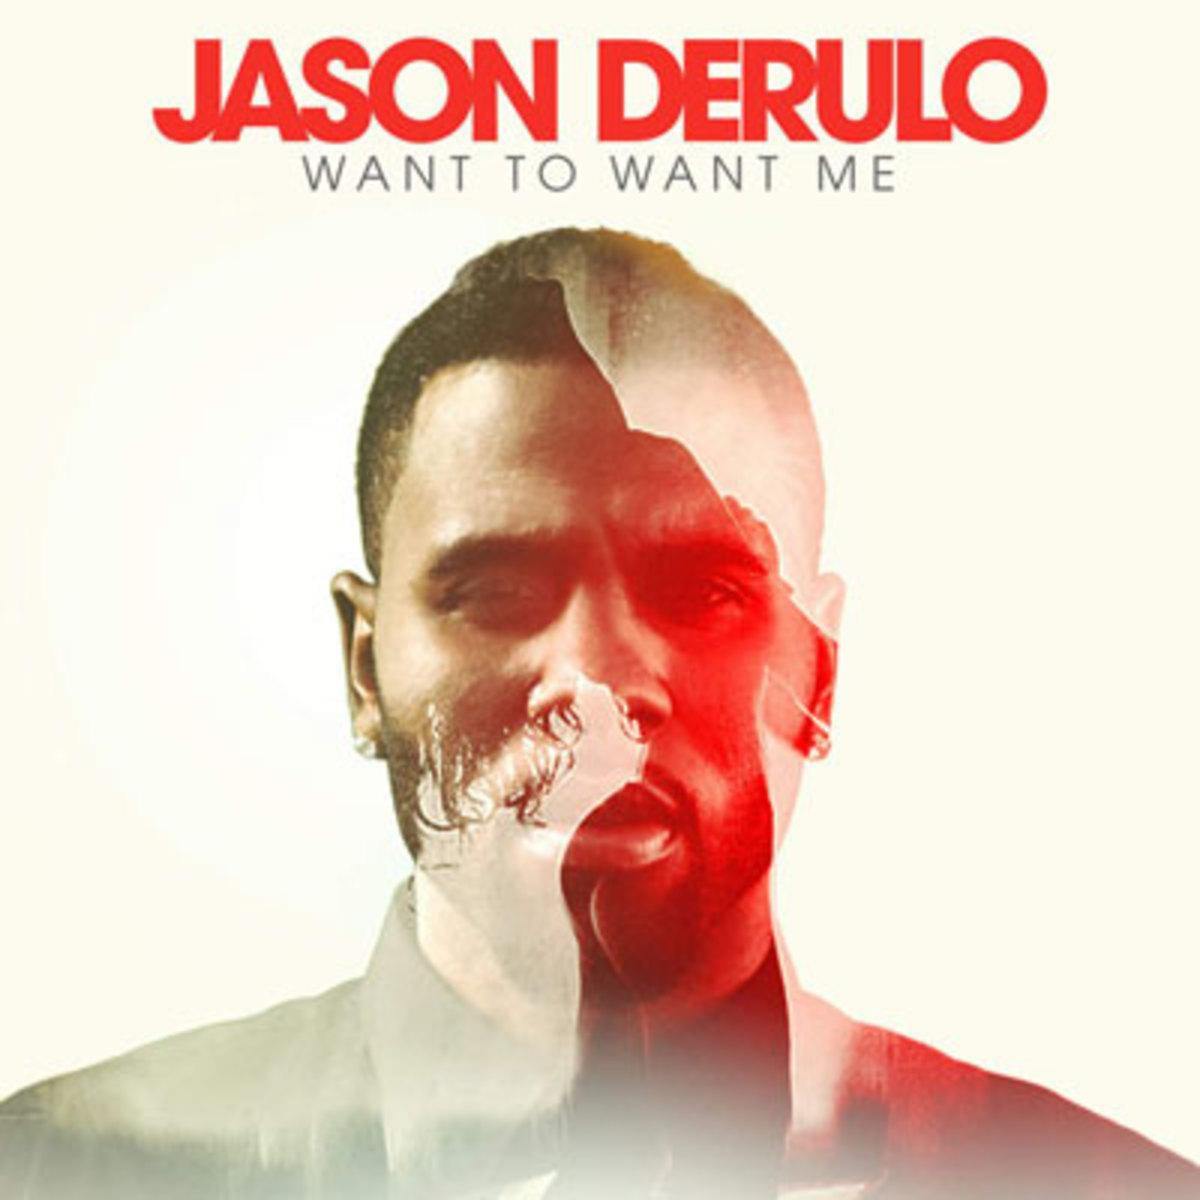 jason-derulo-want-to-want-me.jpg